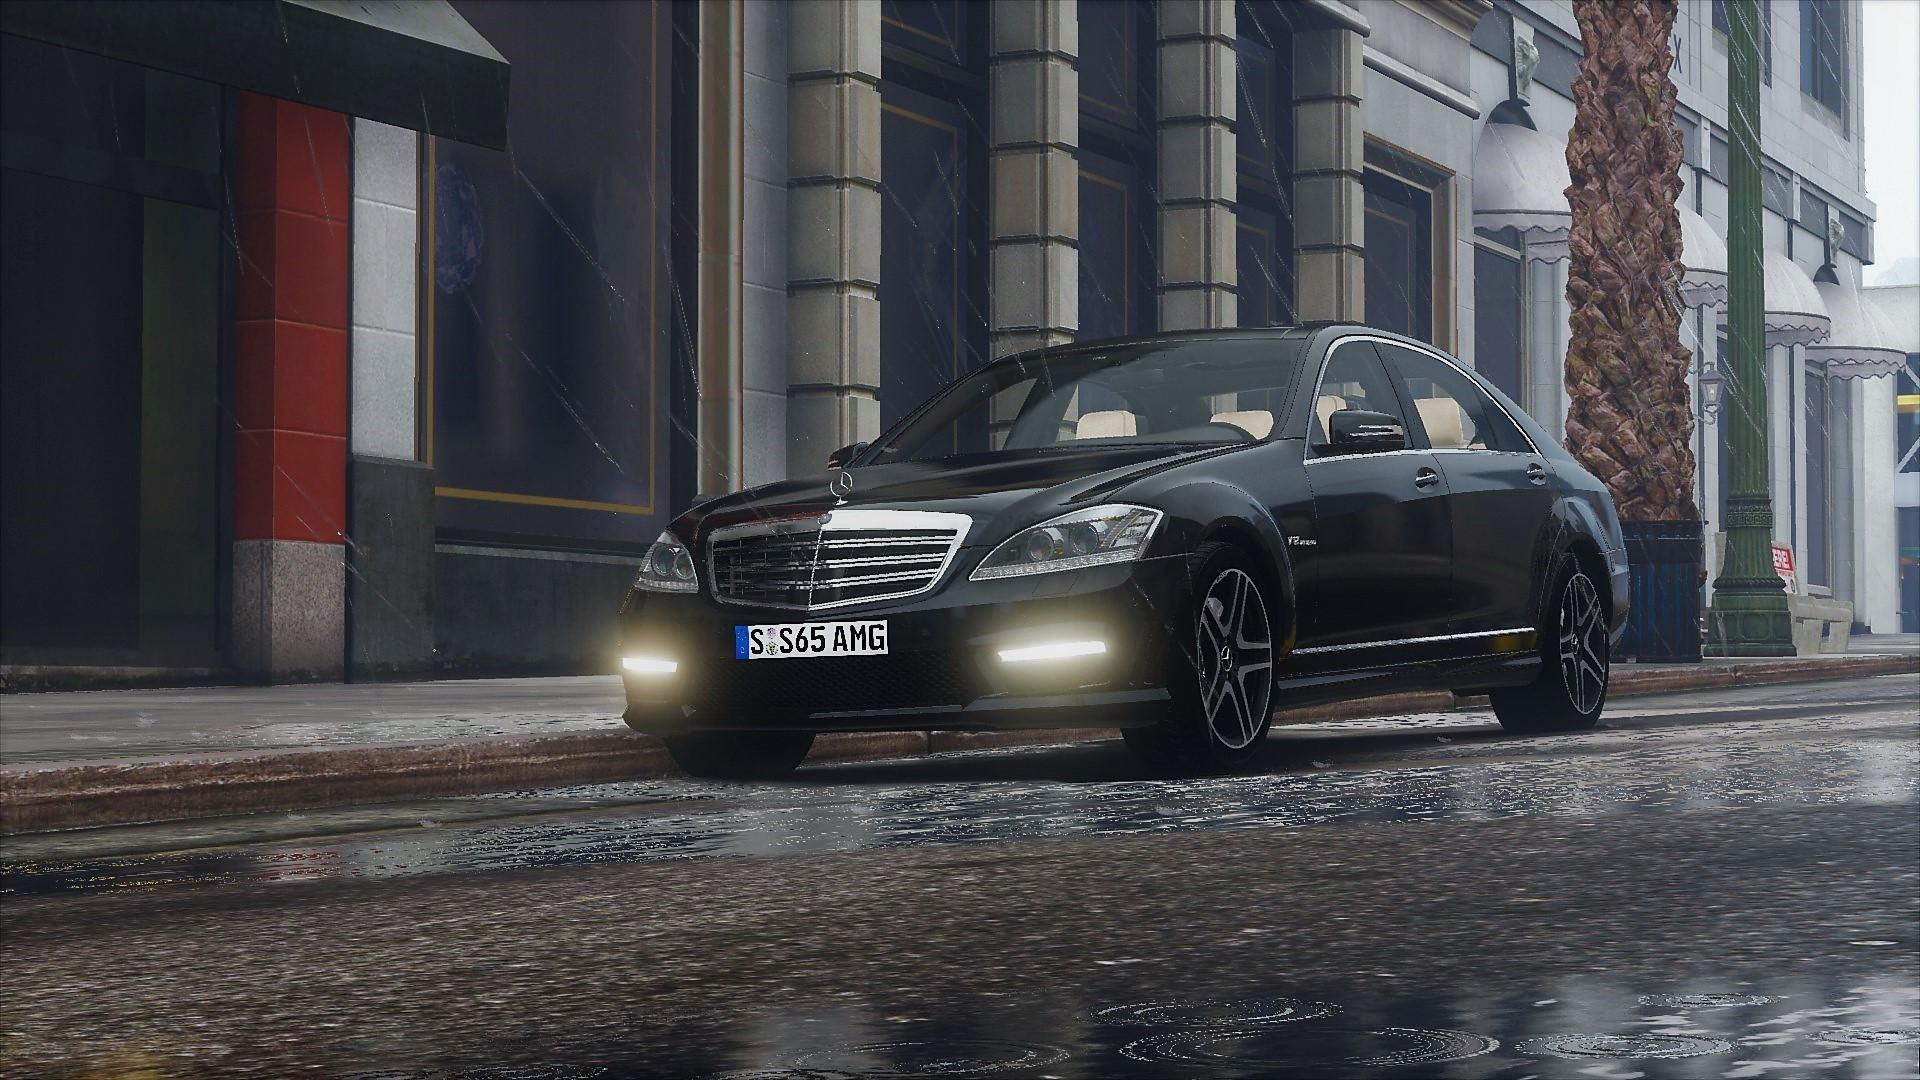 2012 mercedes benz s65 amg w221 add on tuning gta5. Black Bedroom Furniture Sets. Home Design Ideas